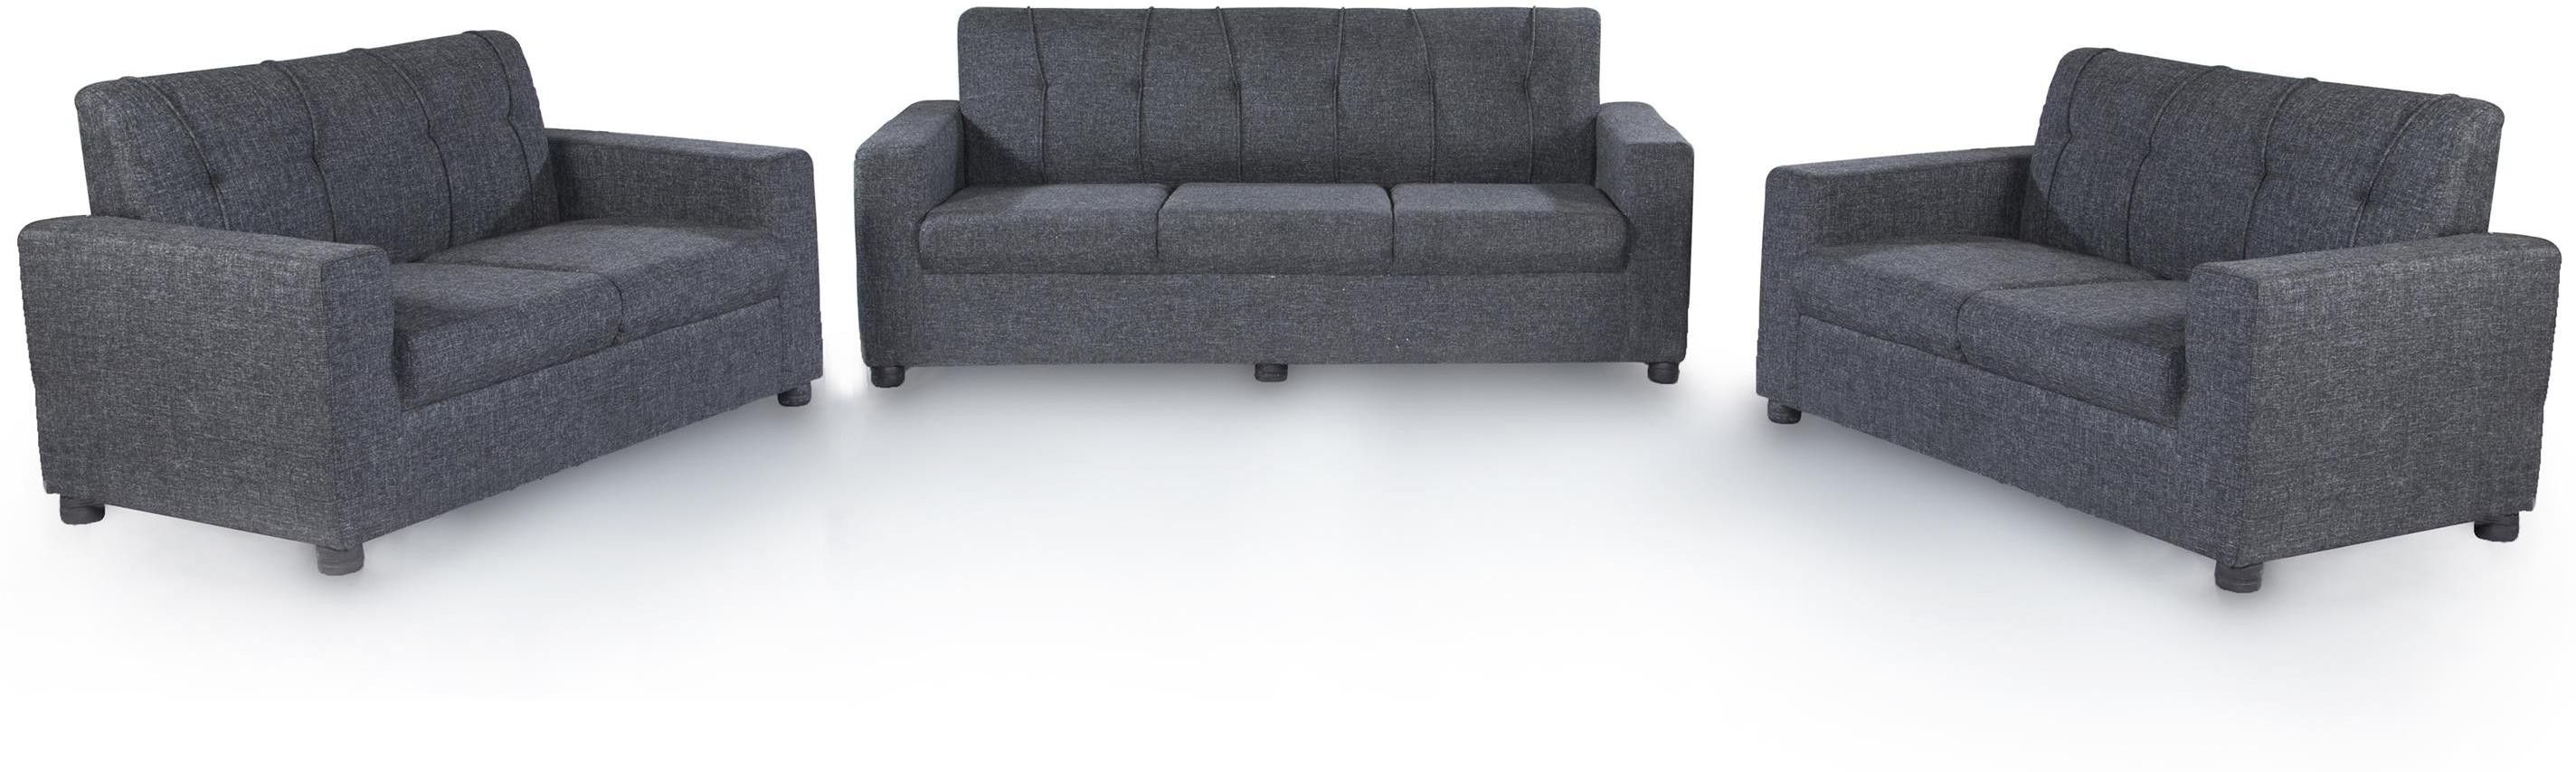 View Furnicity Fabric 3 + 2 + 2 Grey Sofa Set(Configuration - Straight) Furniture (Furnicity)